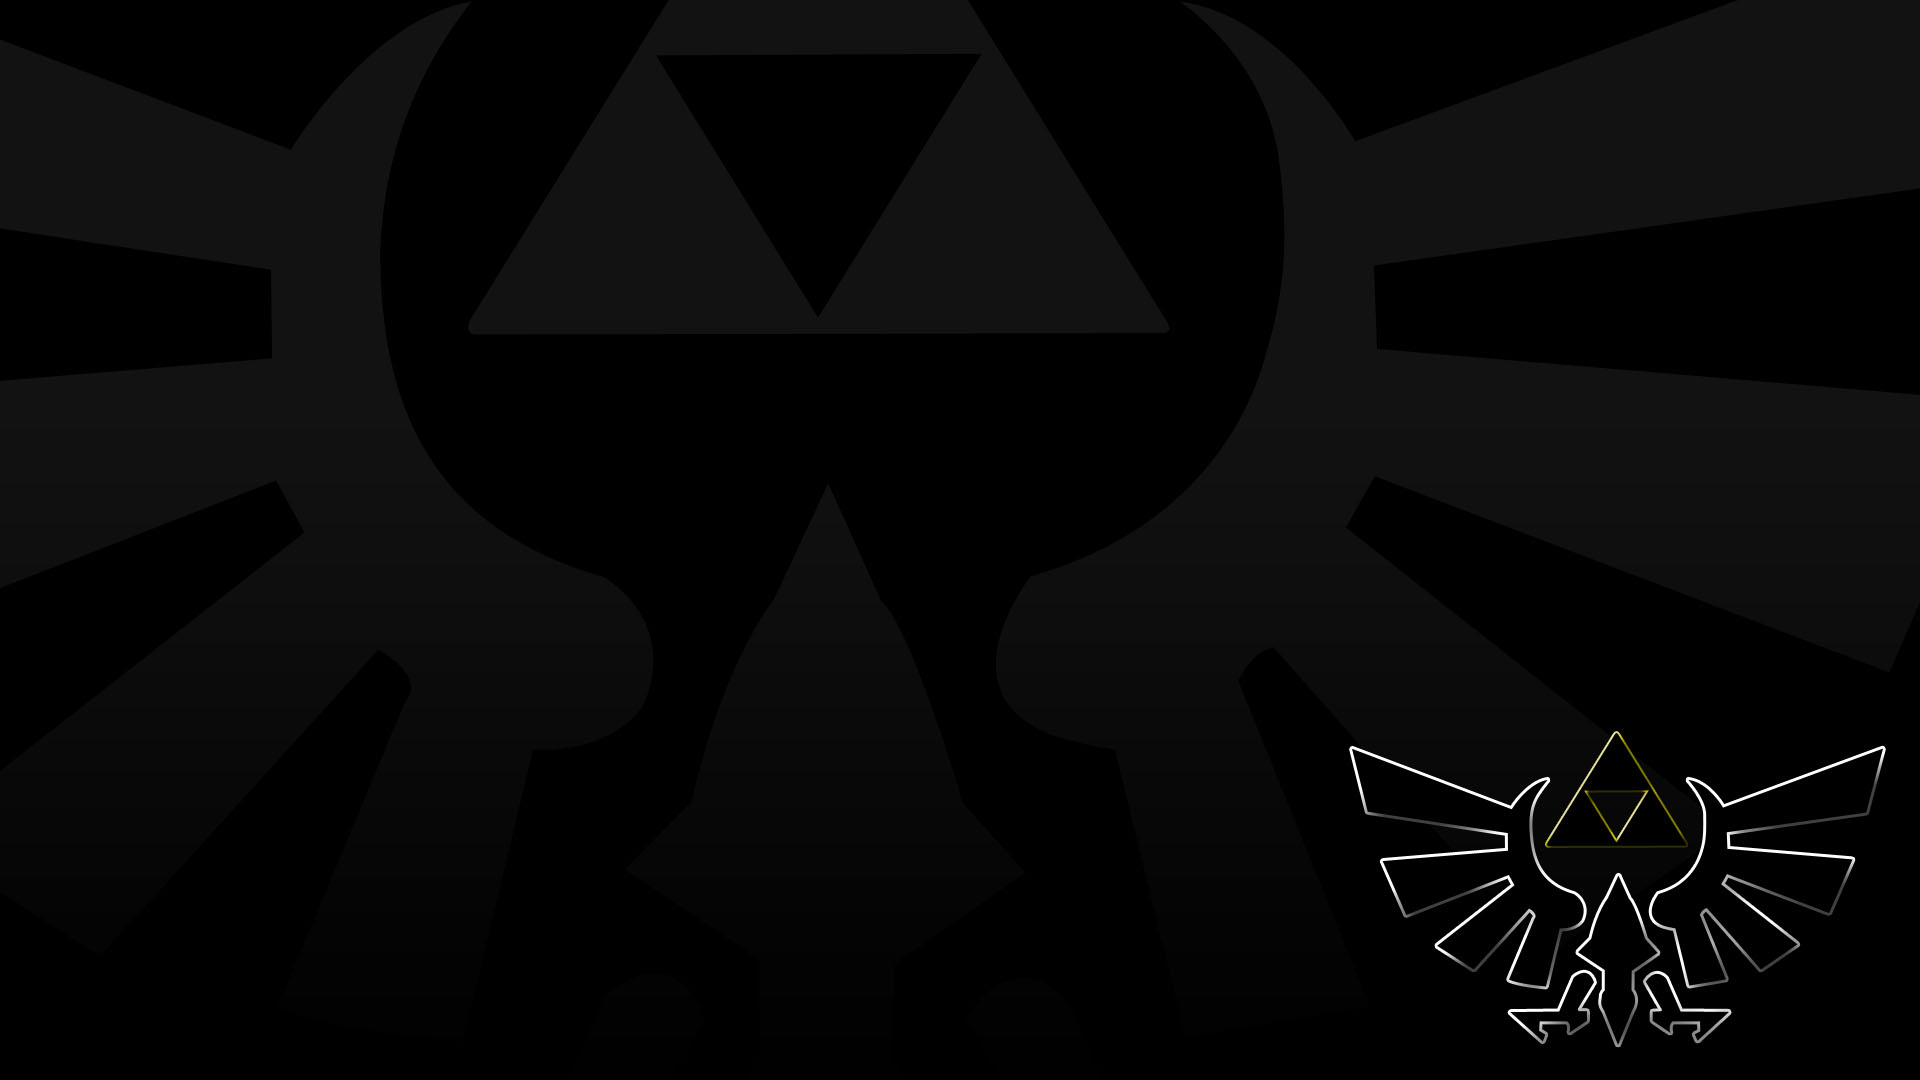 12 Triforce HD Wallpapers | Backgrounds - Wallpaper Abyss